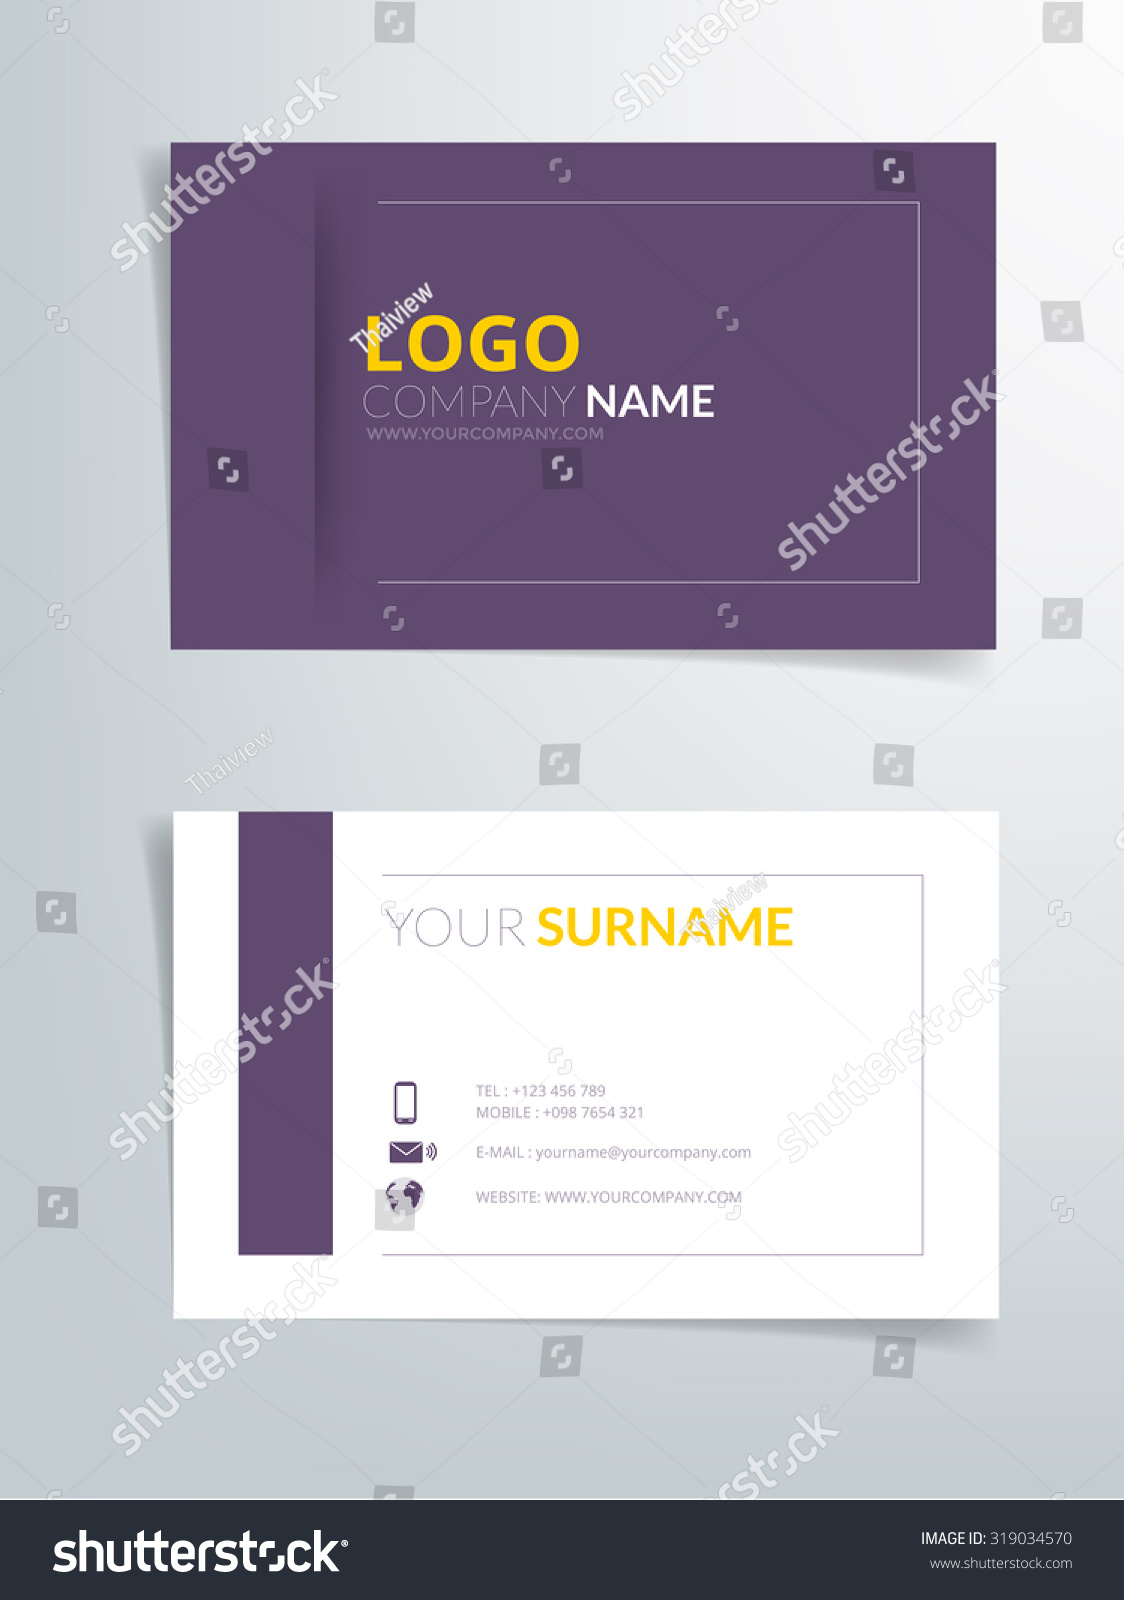 Unusual 1 Page Resumes Tiny 10 Envelope Template Indesign Rectangular 100 Day Plan Template 10x13 Envelope Template Young 16x20 Collage Template Purple18th Birthday Invitation Templates Business Card Template Vector Background Purple Stock Vector ..